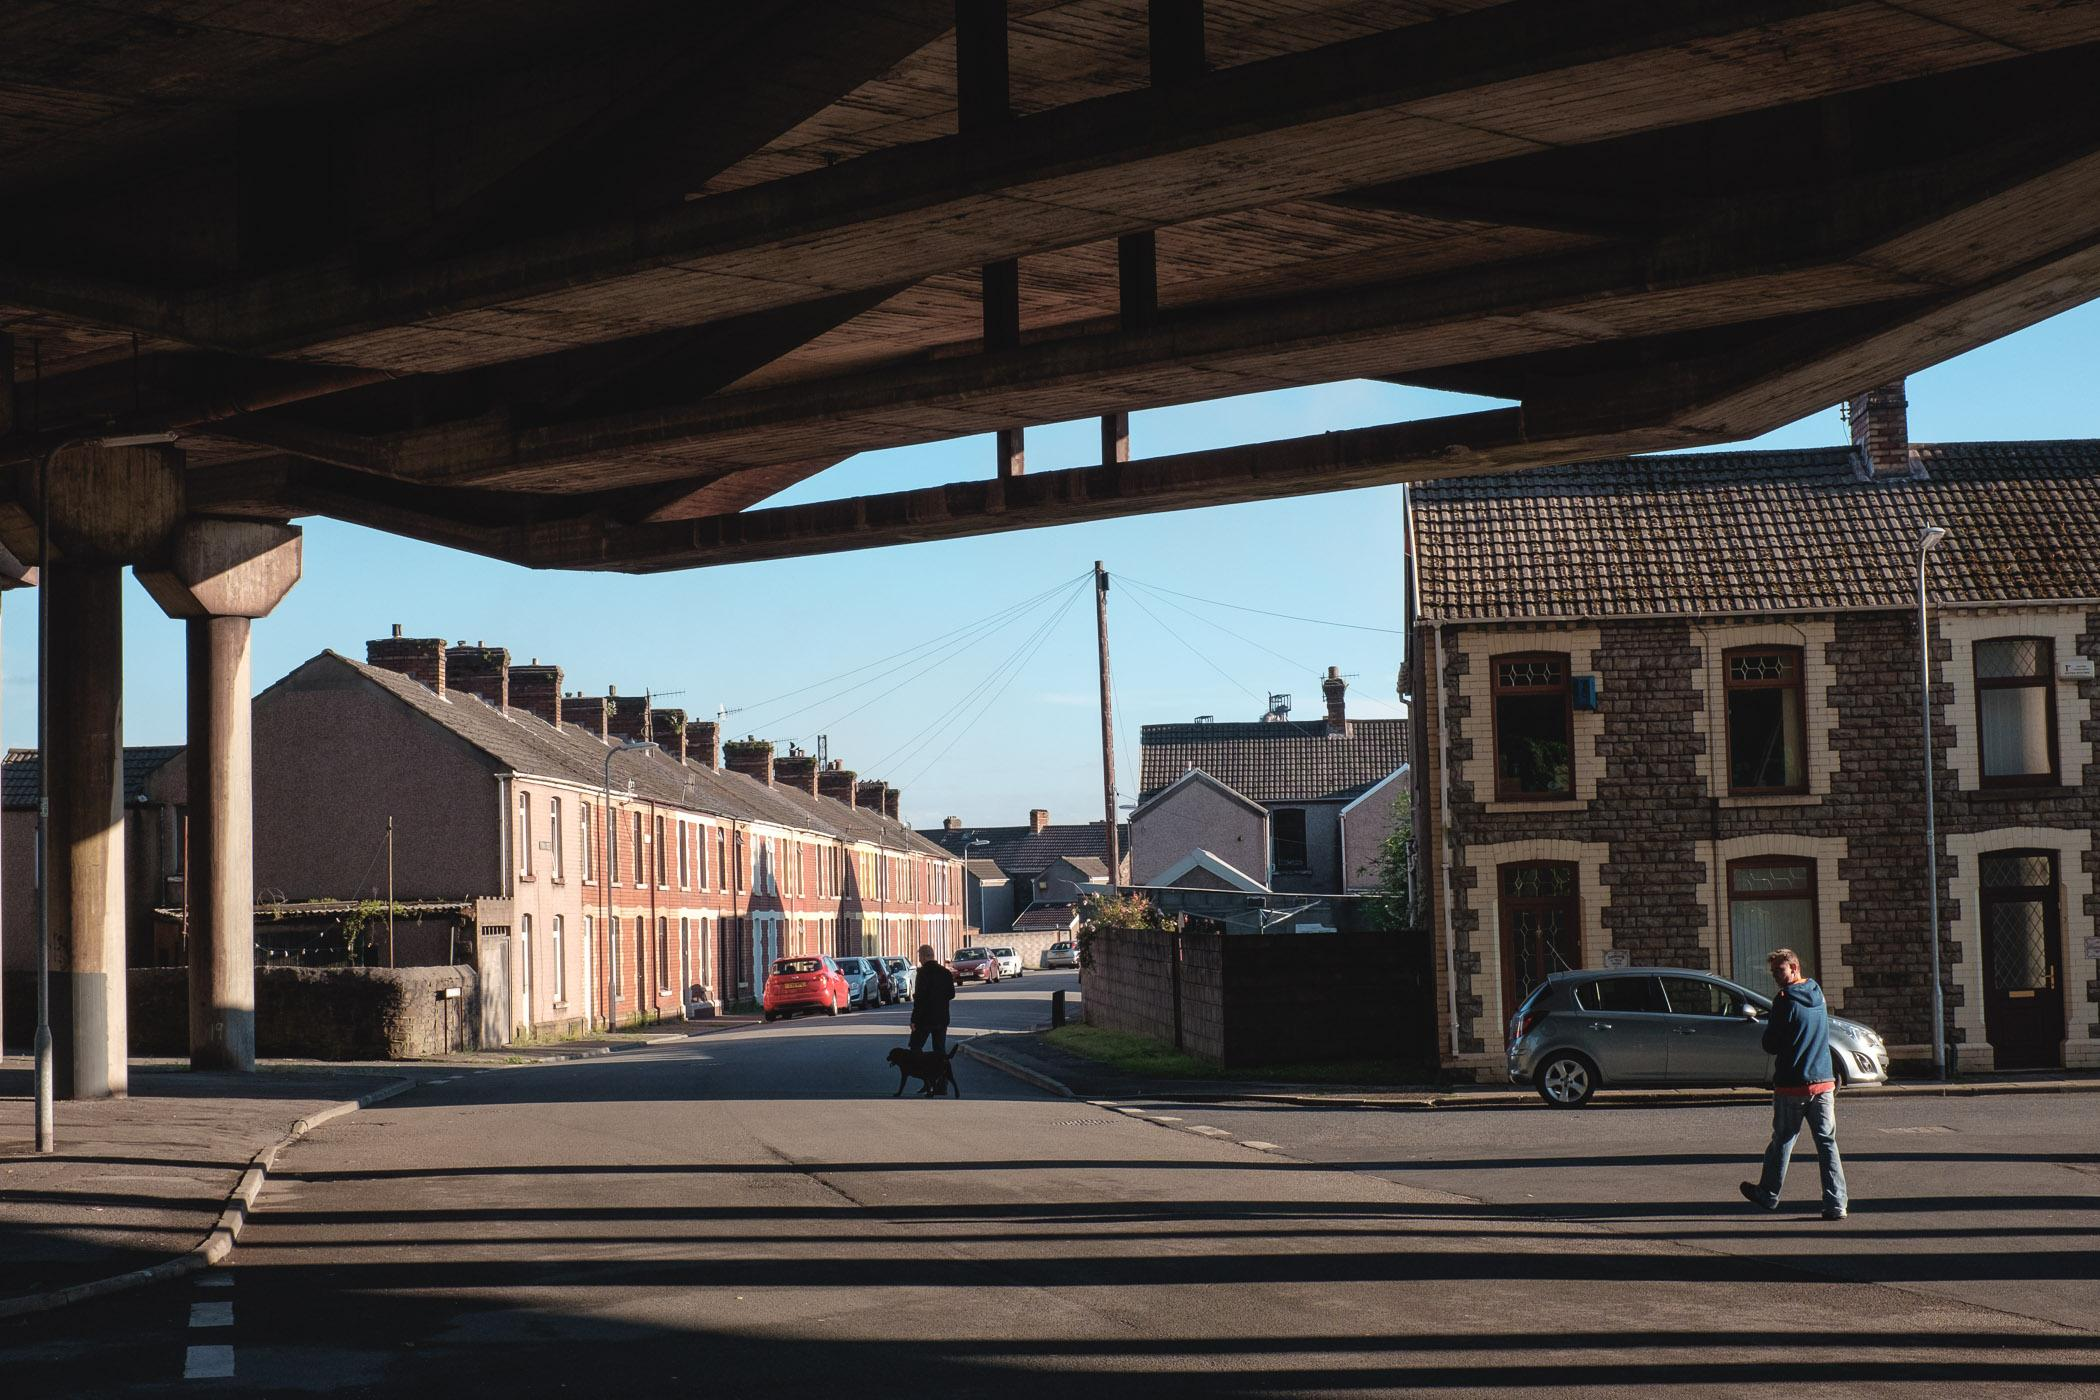 View under the M4 motorway crossing through Port Talbot, Wales.